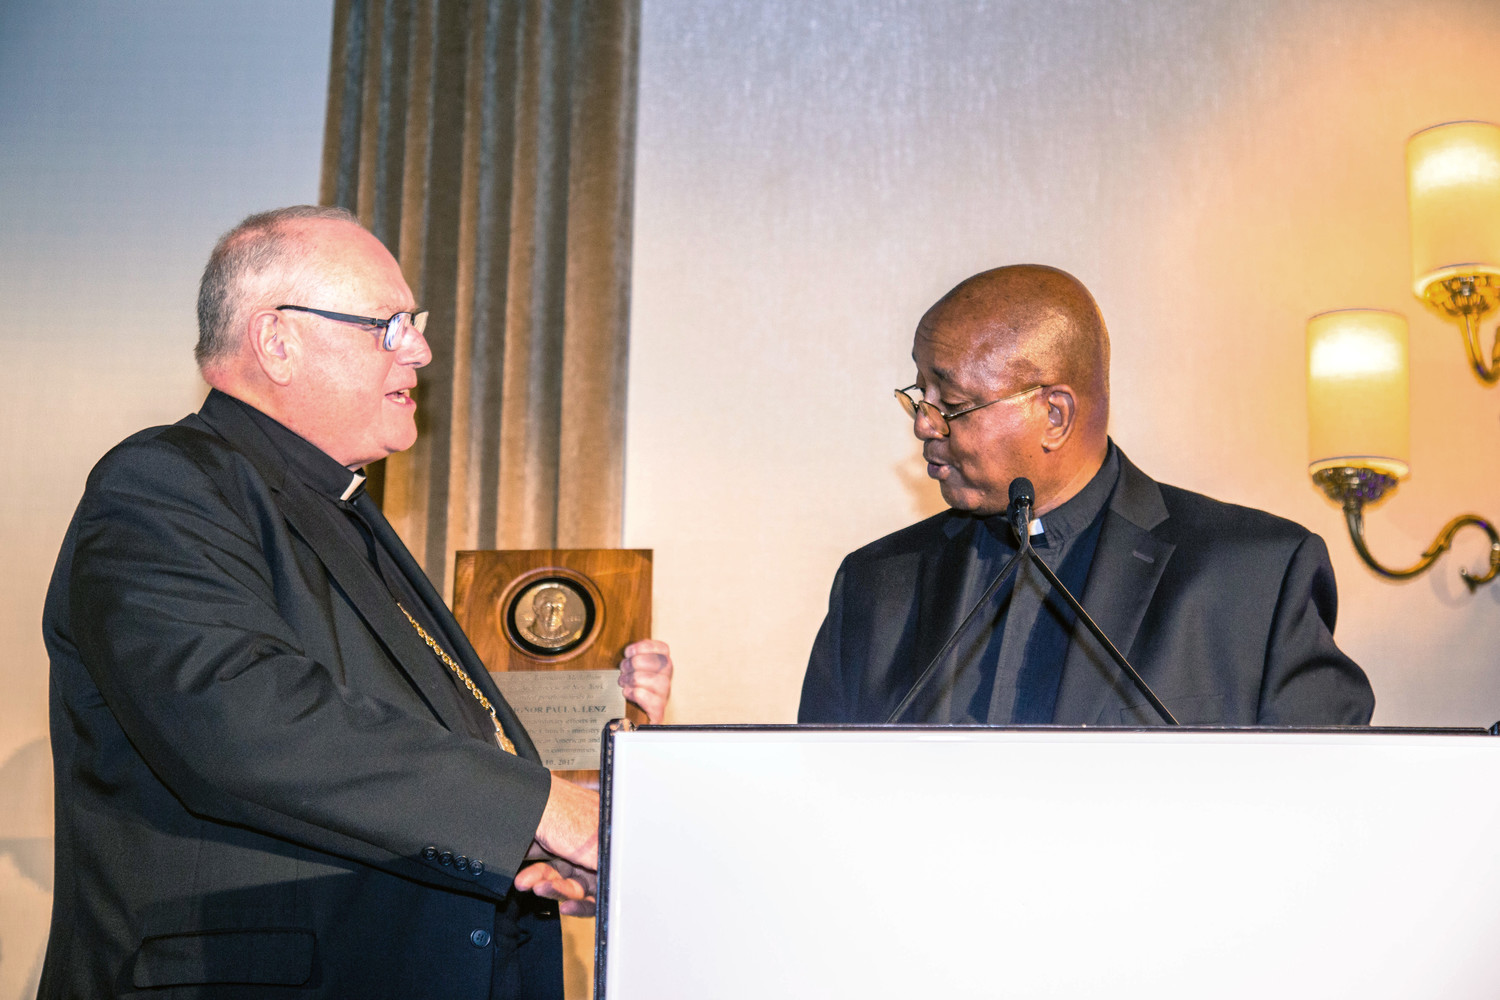 Cardinal Dolan, left, accepts the award given posthumously to Msgr. Paul A. Lenz, a former national director of the Black and Indian Mission Office, from Brother Tyrone Davis, C.F.C., executive director of the archdiocesan Office of Black Ministry.